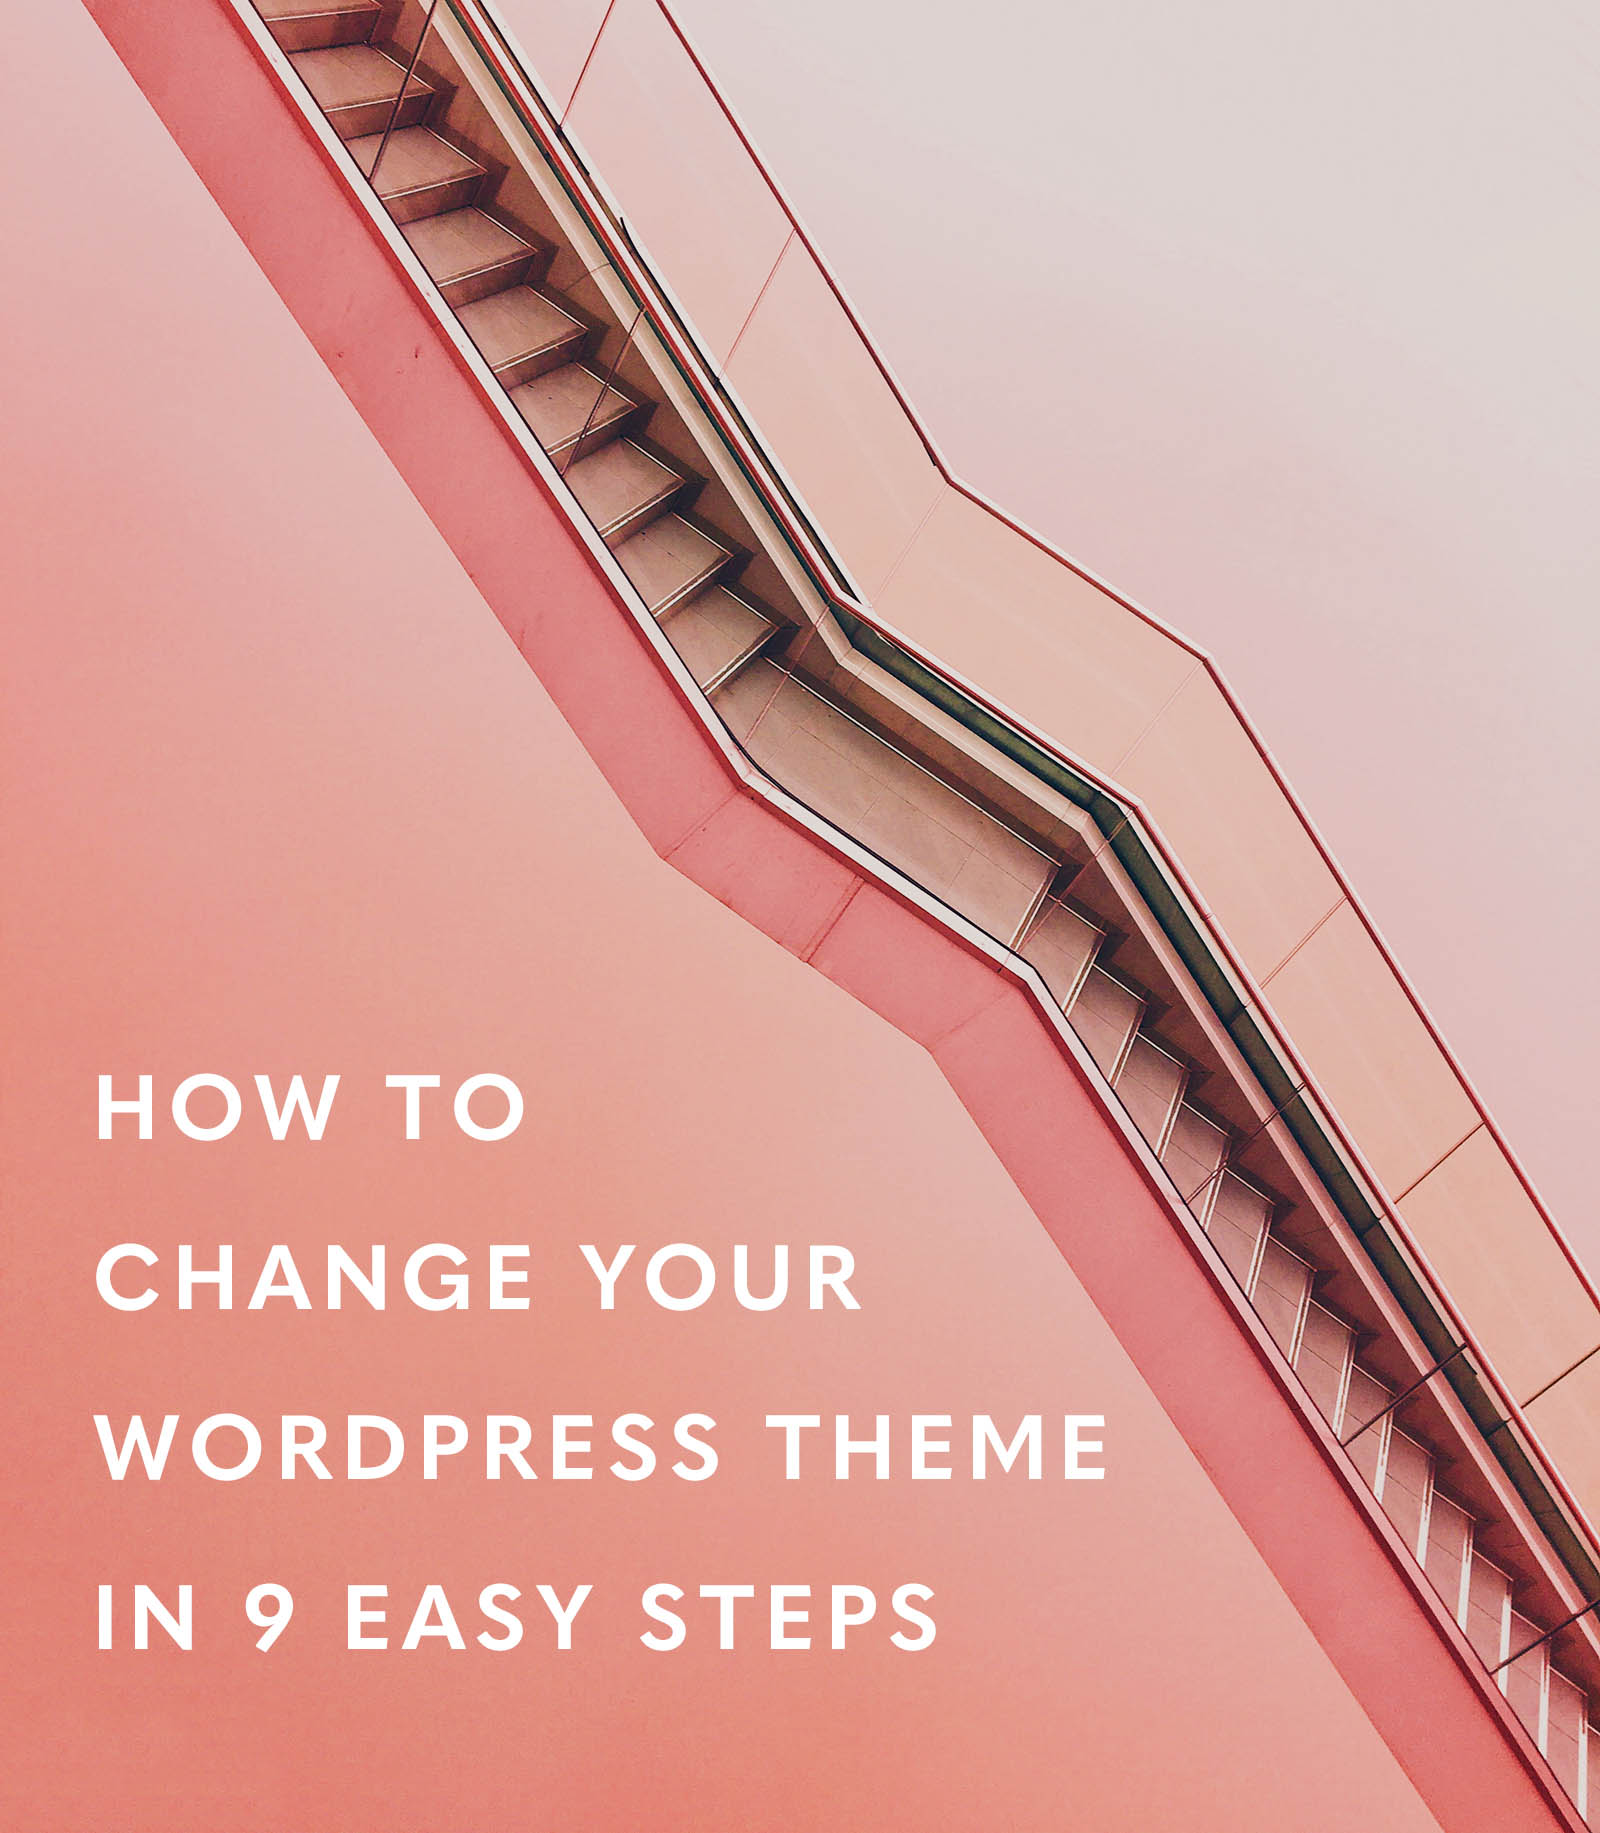 how to change your wordpress theme step by step